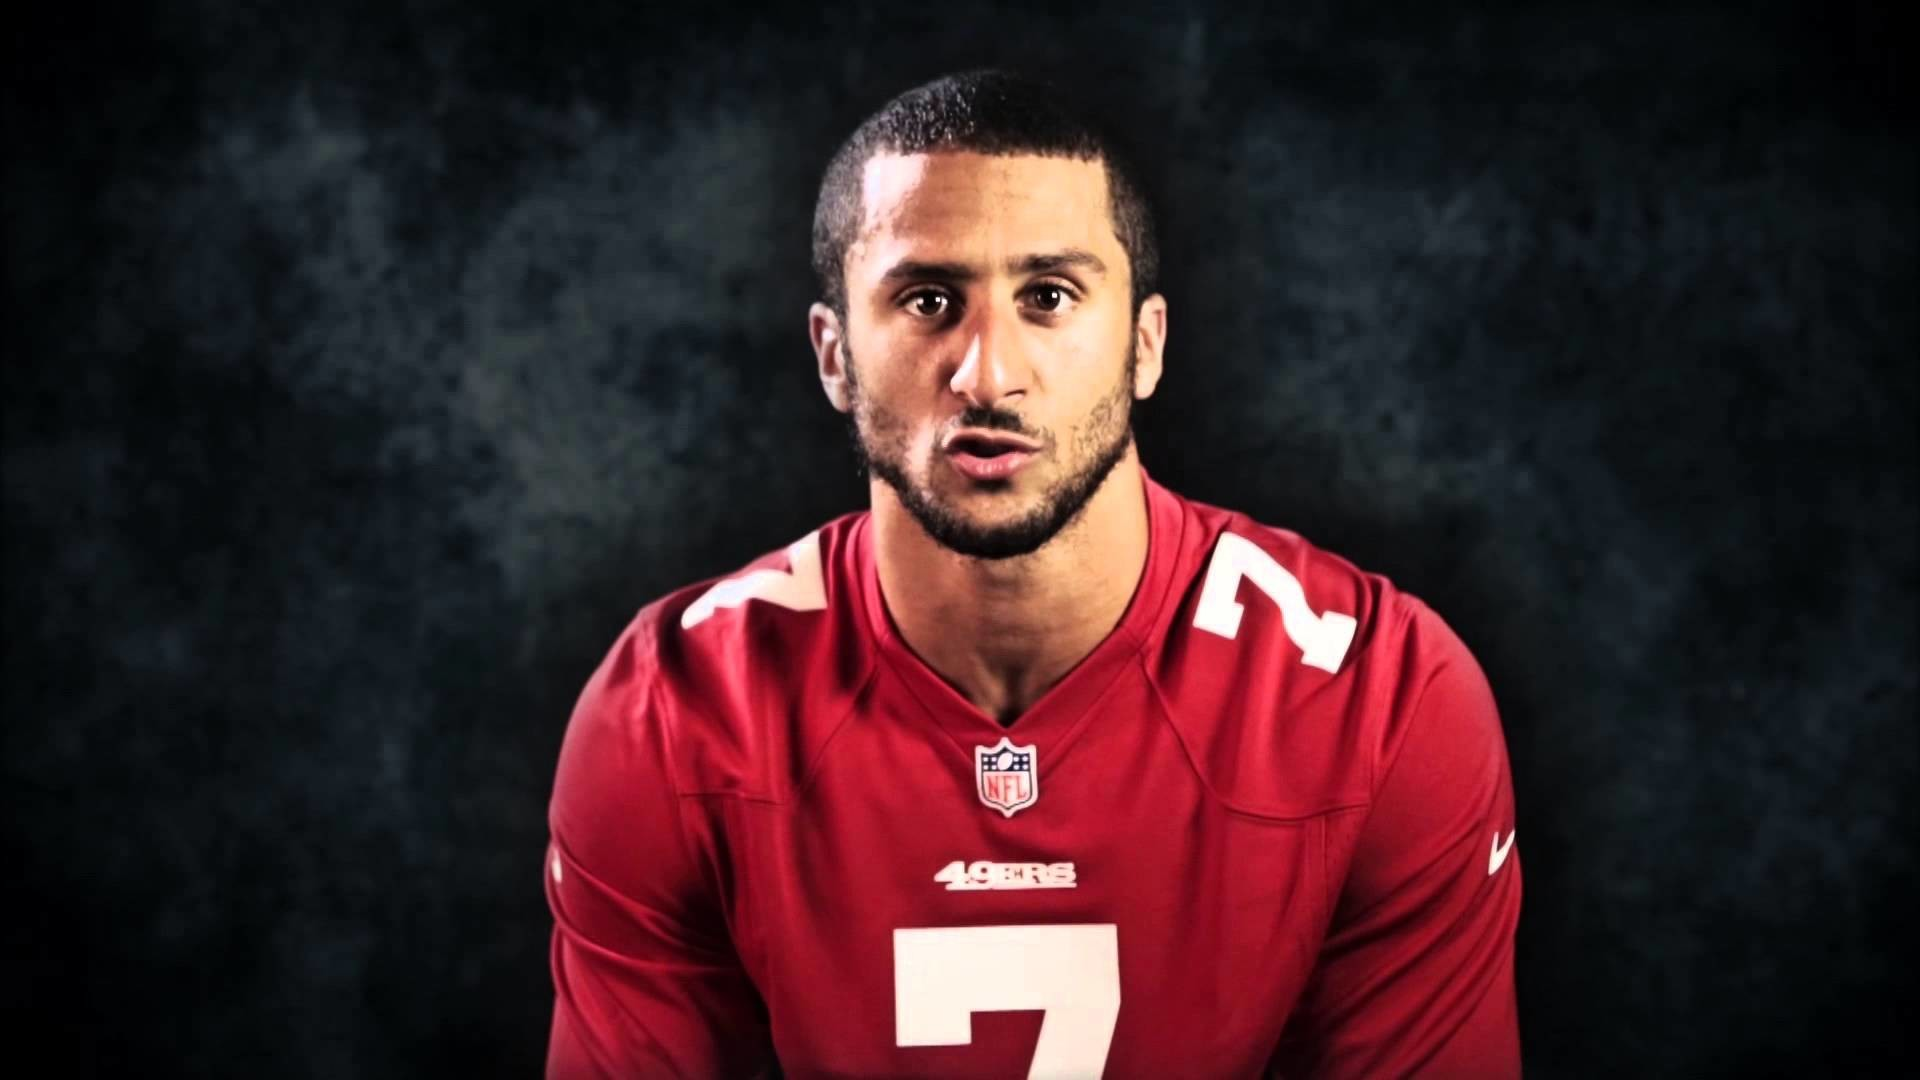 Colin Kaepernick 2018 player profile game log season stats career stats recent news If you play fantasy sports get breaking news and immerse yourself in the